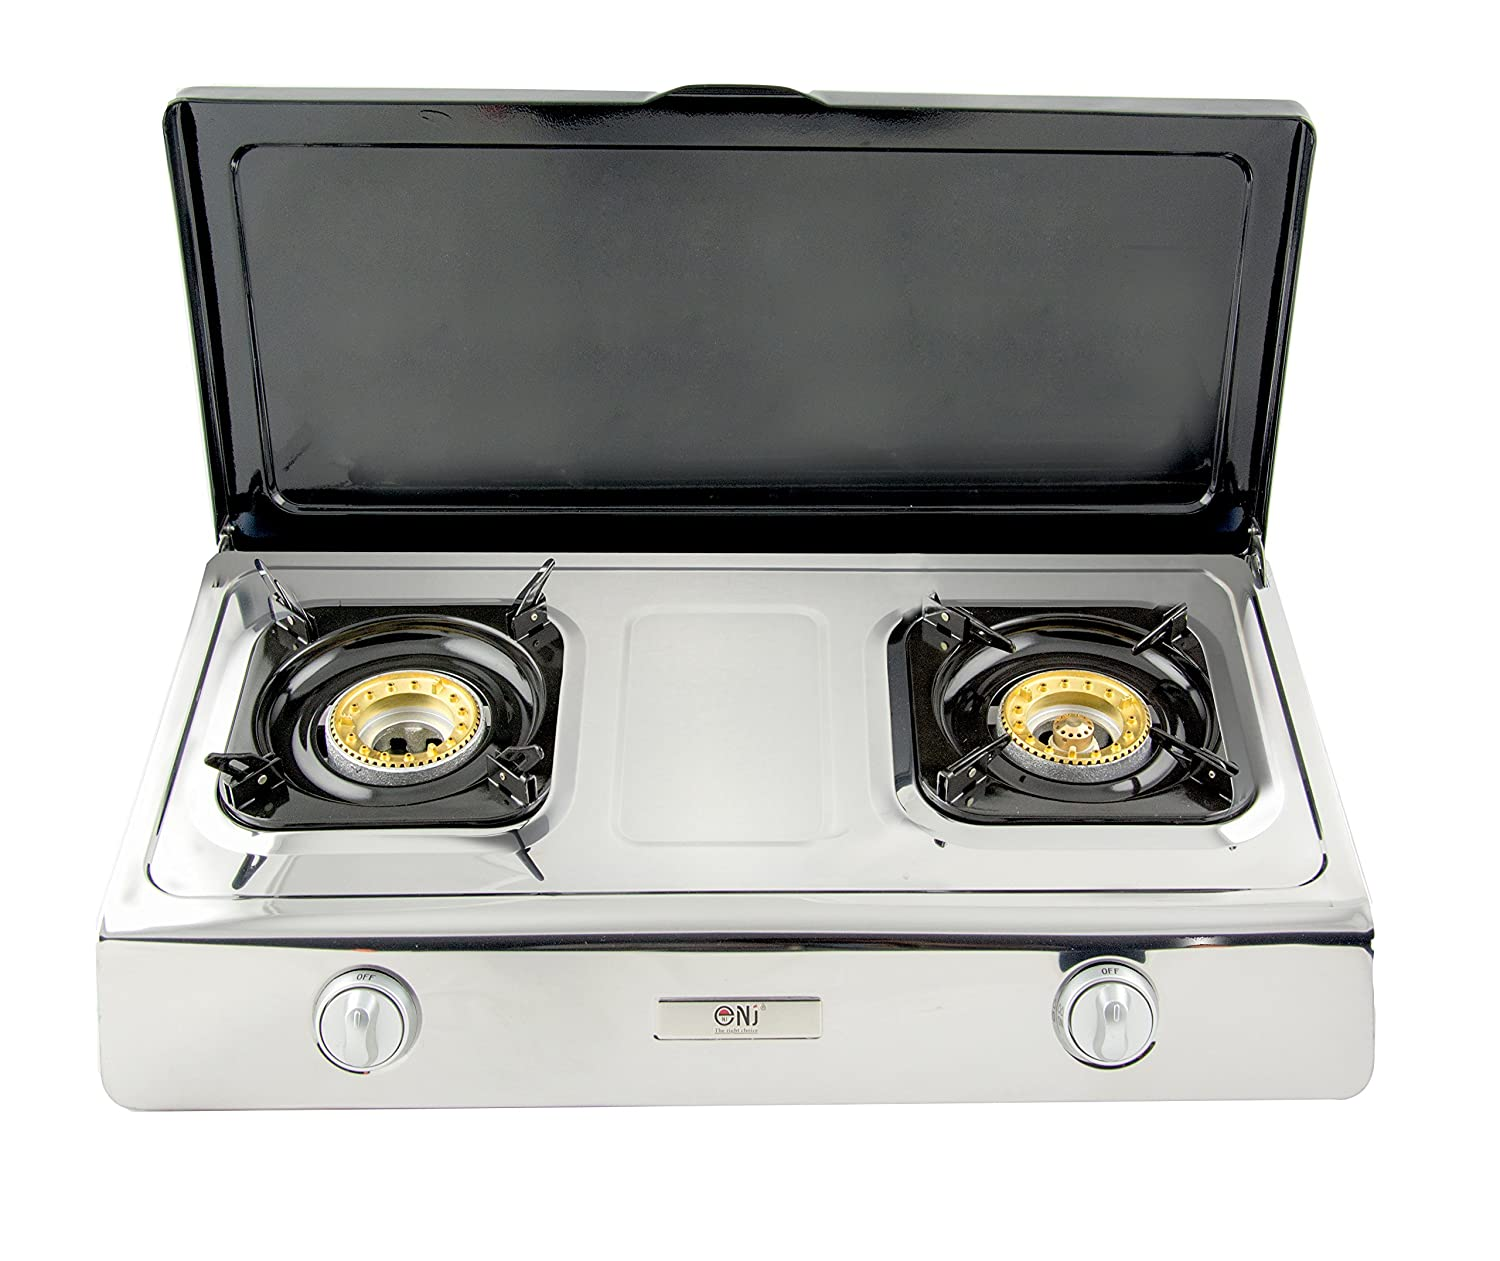 NJ NGB-200C Gas Stove 2 Burners 70cm Stainless Steel WOK Cover Outdoor FONTRON LTD